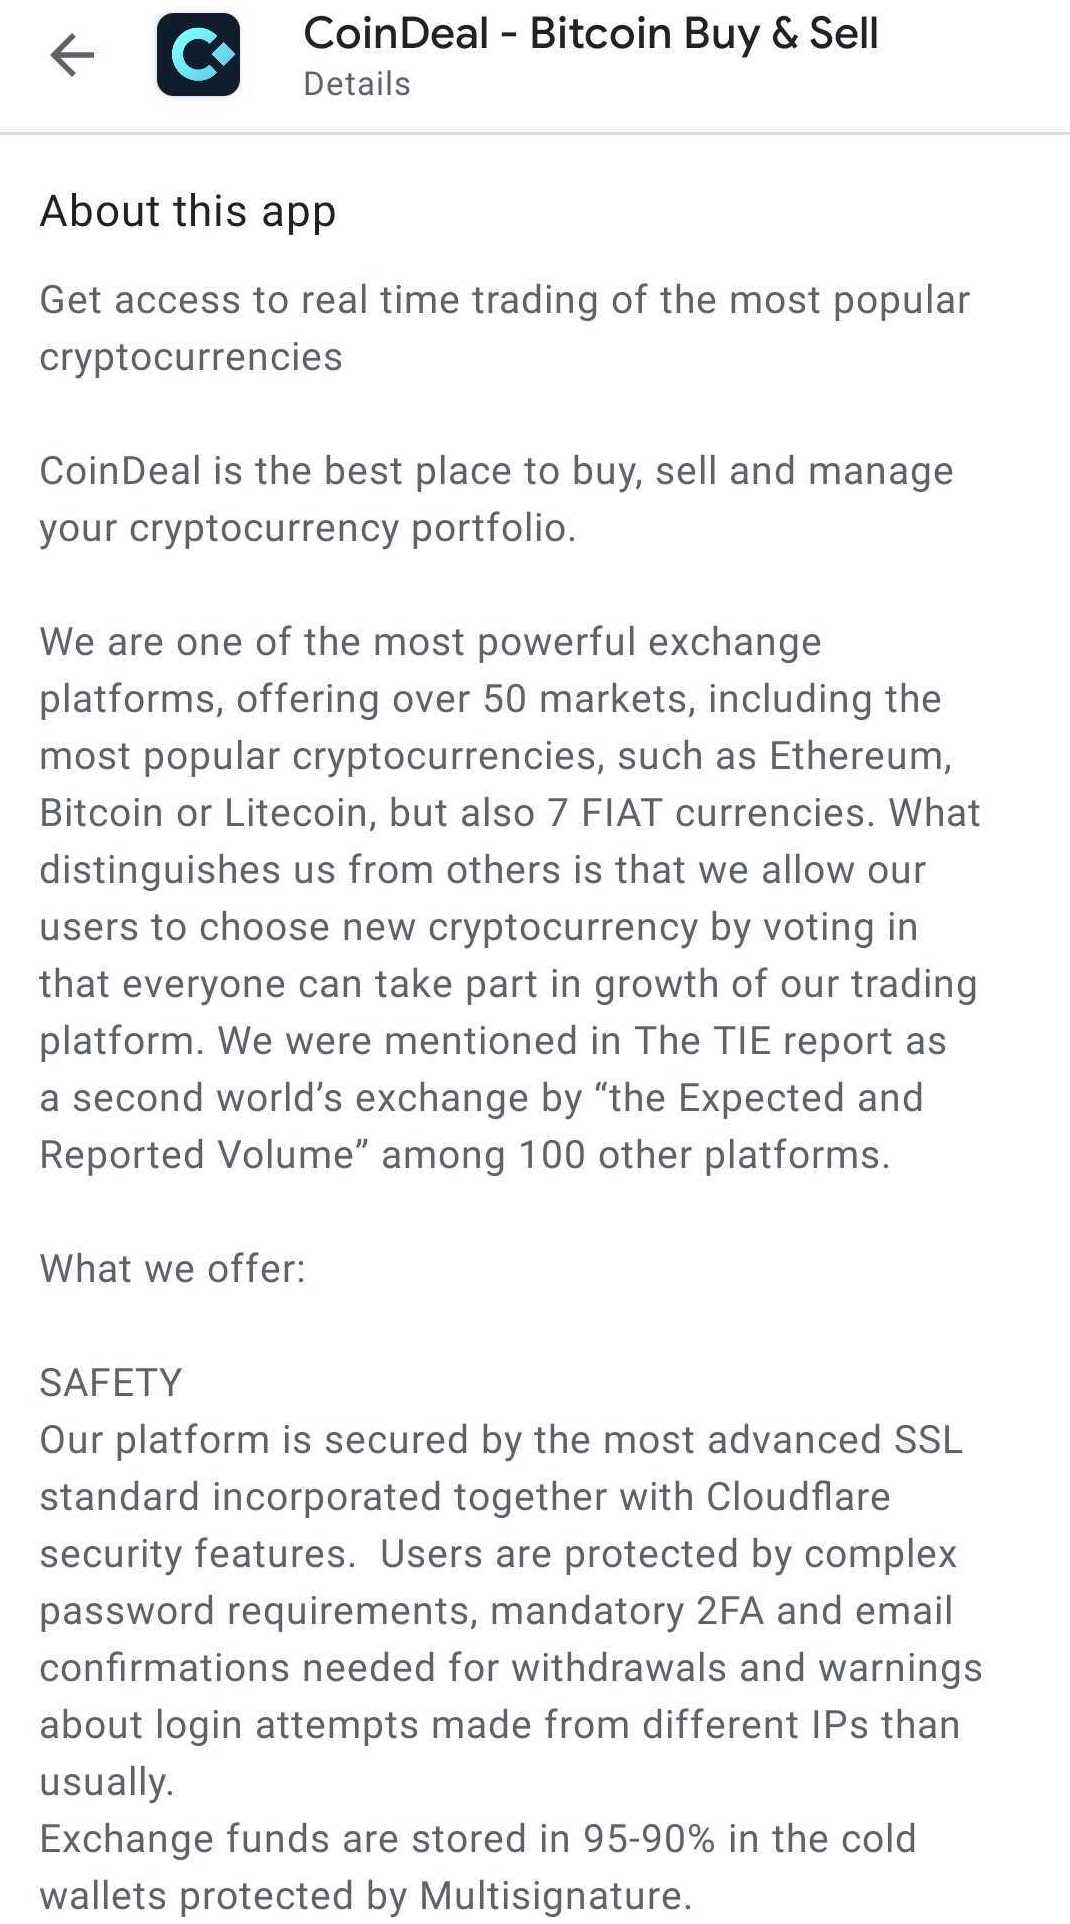 CoinDeal in Google Play store - long description